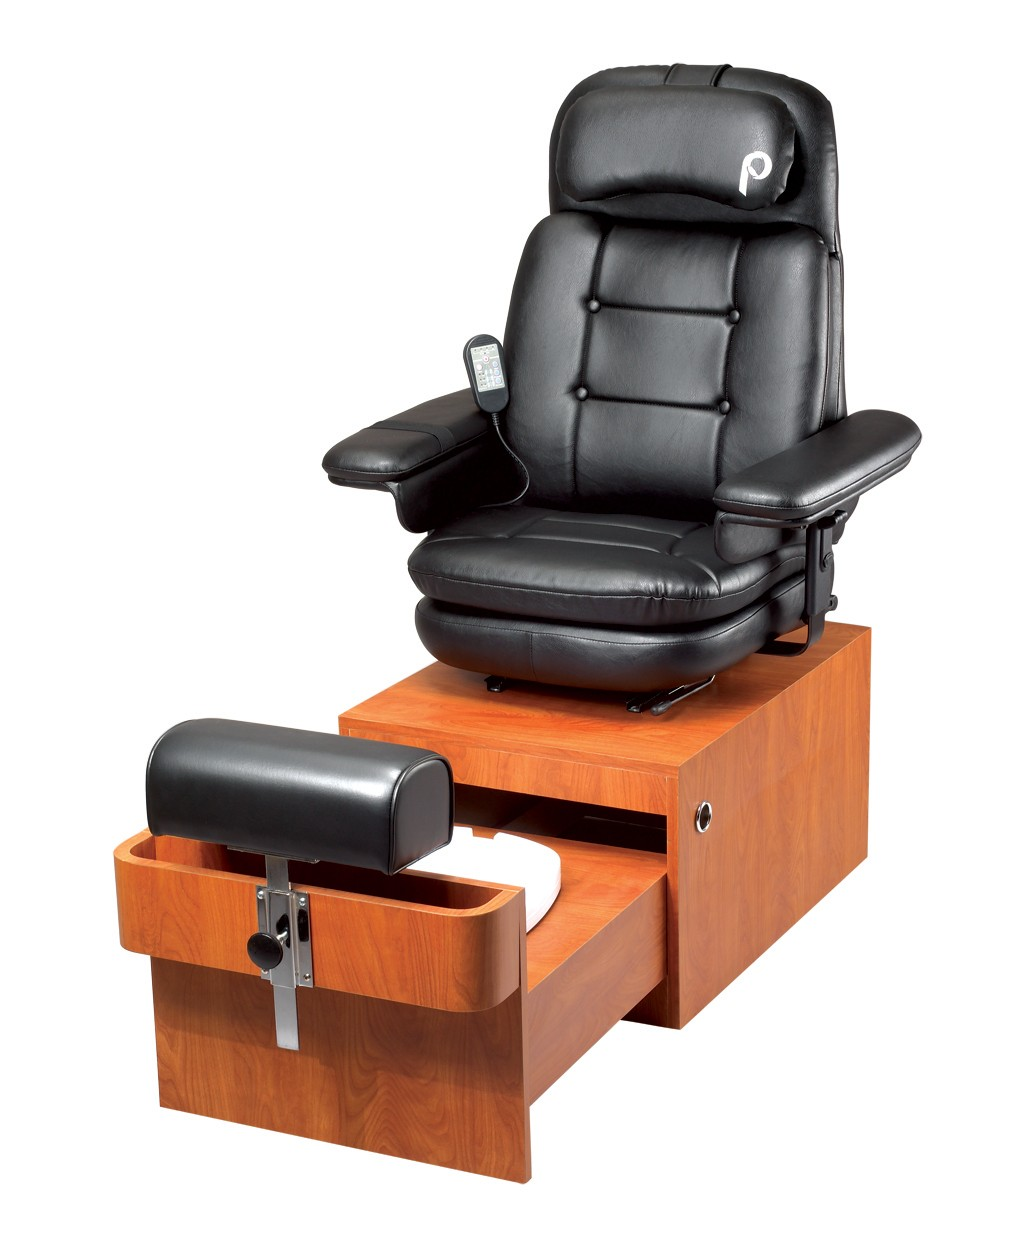 used no plumbing pedicure chair black folding pibbs ps89 amalfi spa from buy rite